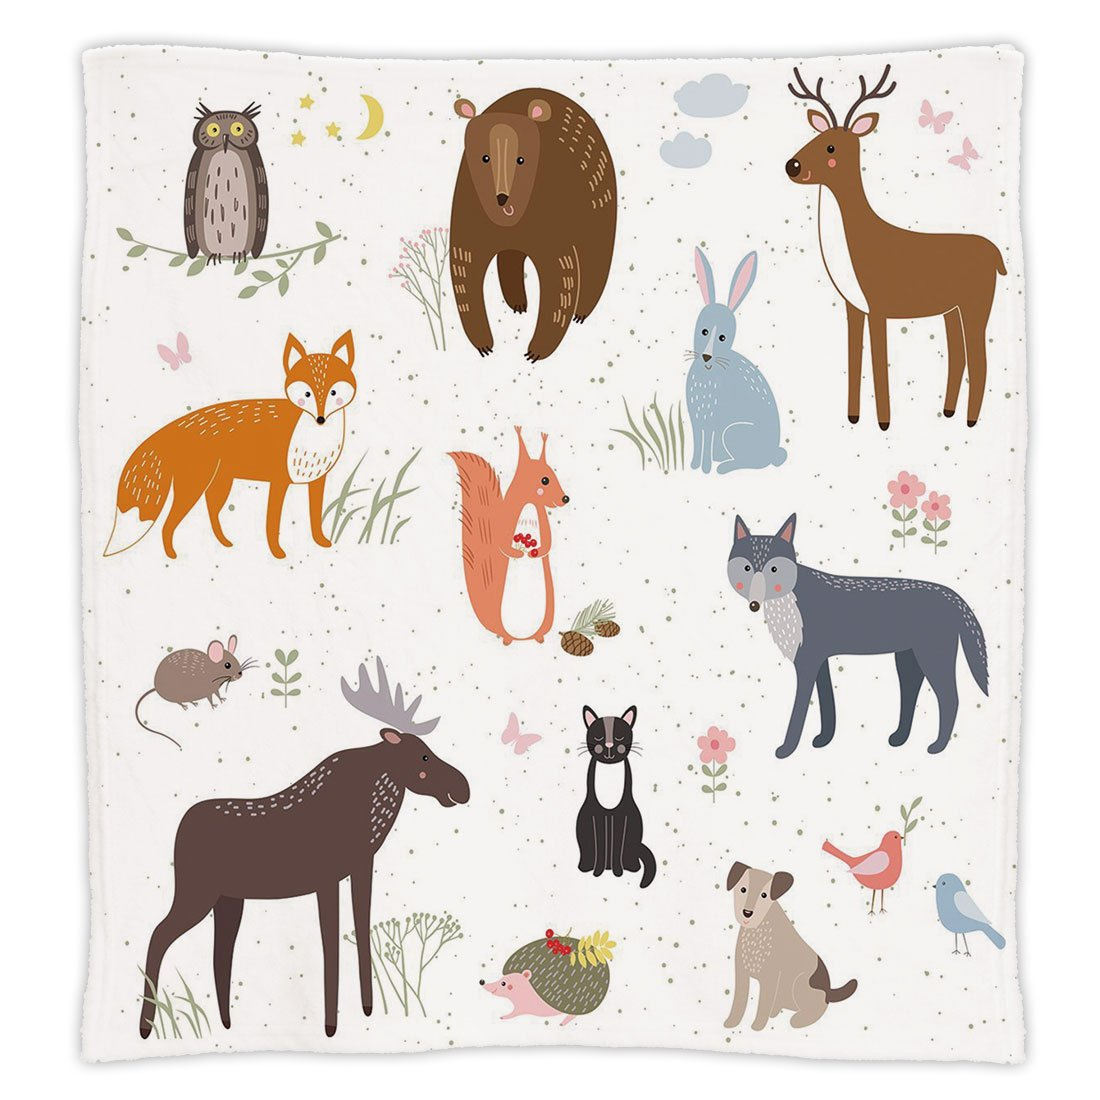 Super Soft Throw Blanket Custom Design Cozy Fleece Blanket,Cabin Decor,Cute Animals in Spring Meadow Childish Woodland Fauna Kids Baby Room Nursery Decorative,Multicolor,Perfect for Couch Sofa or Bed